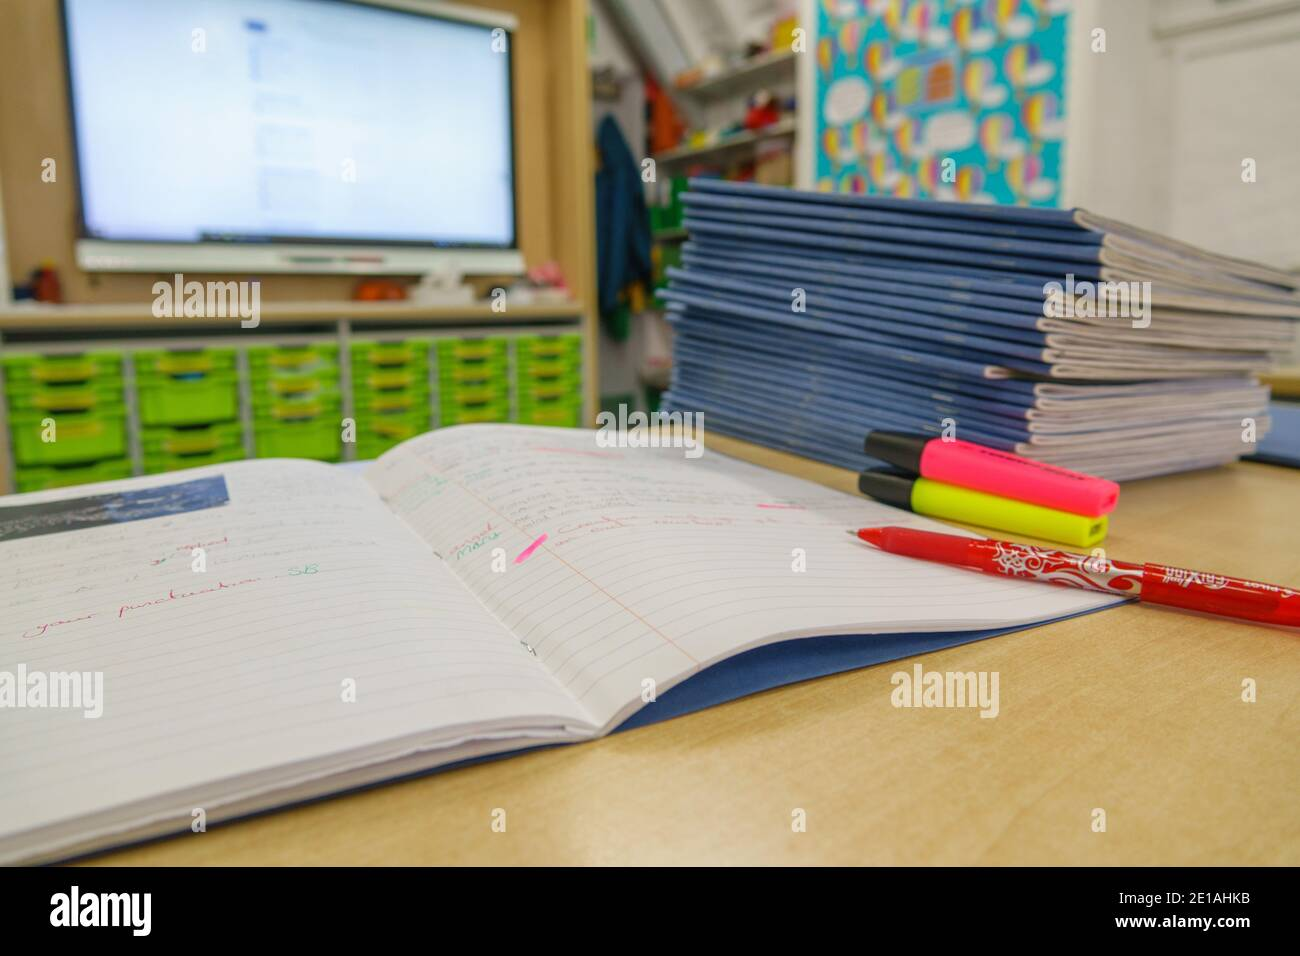 pile-of-school-books-on-a-desk-that-a-te